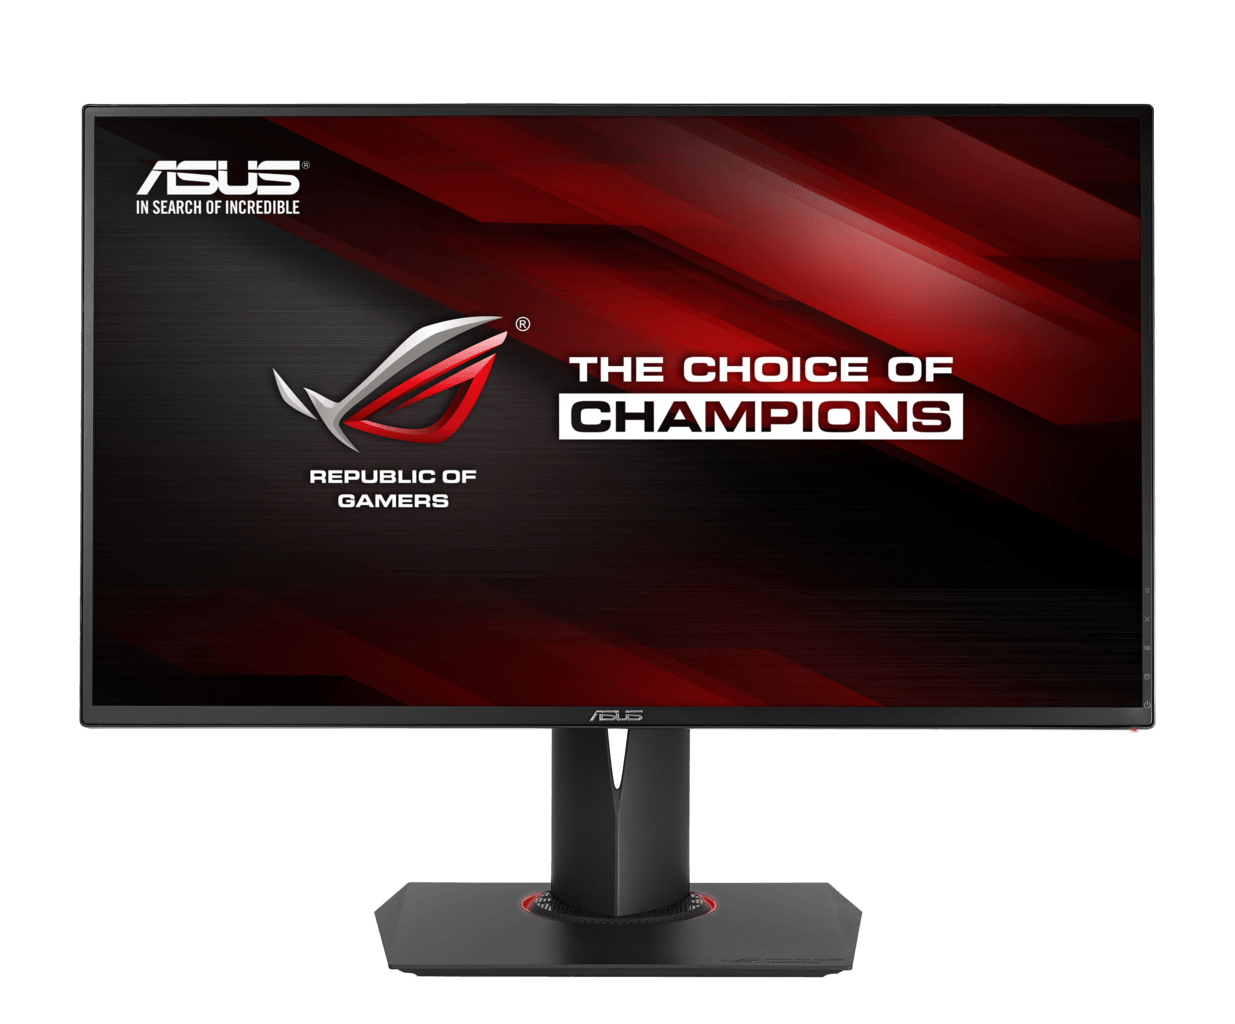 ASUS PG27AQ review